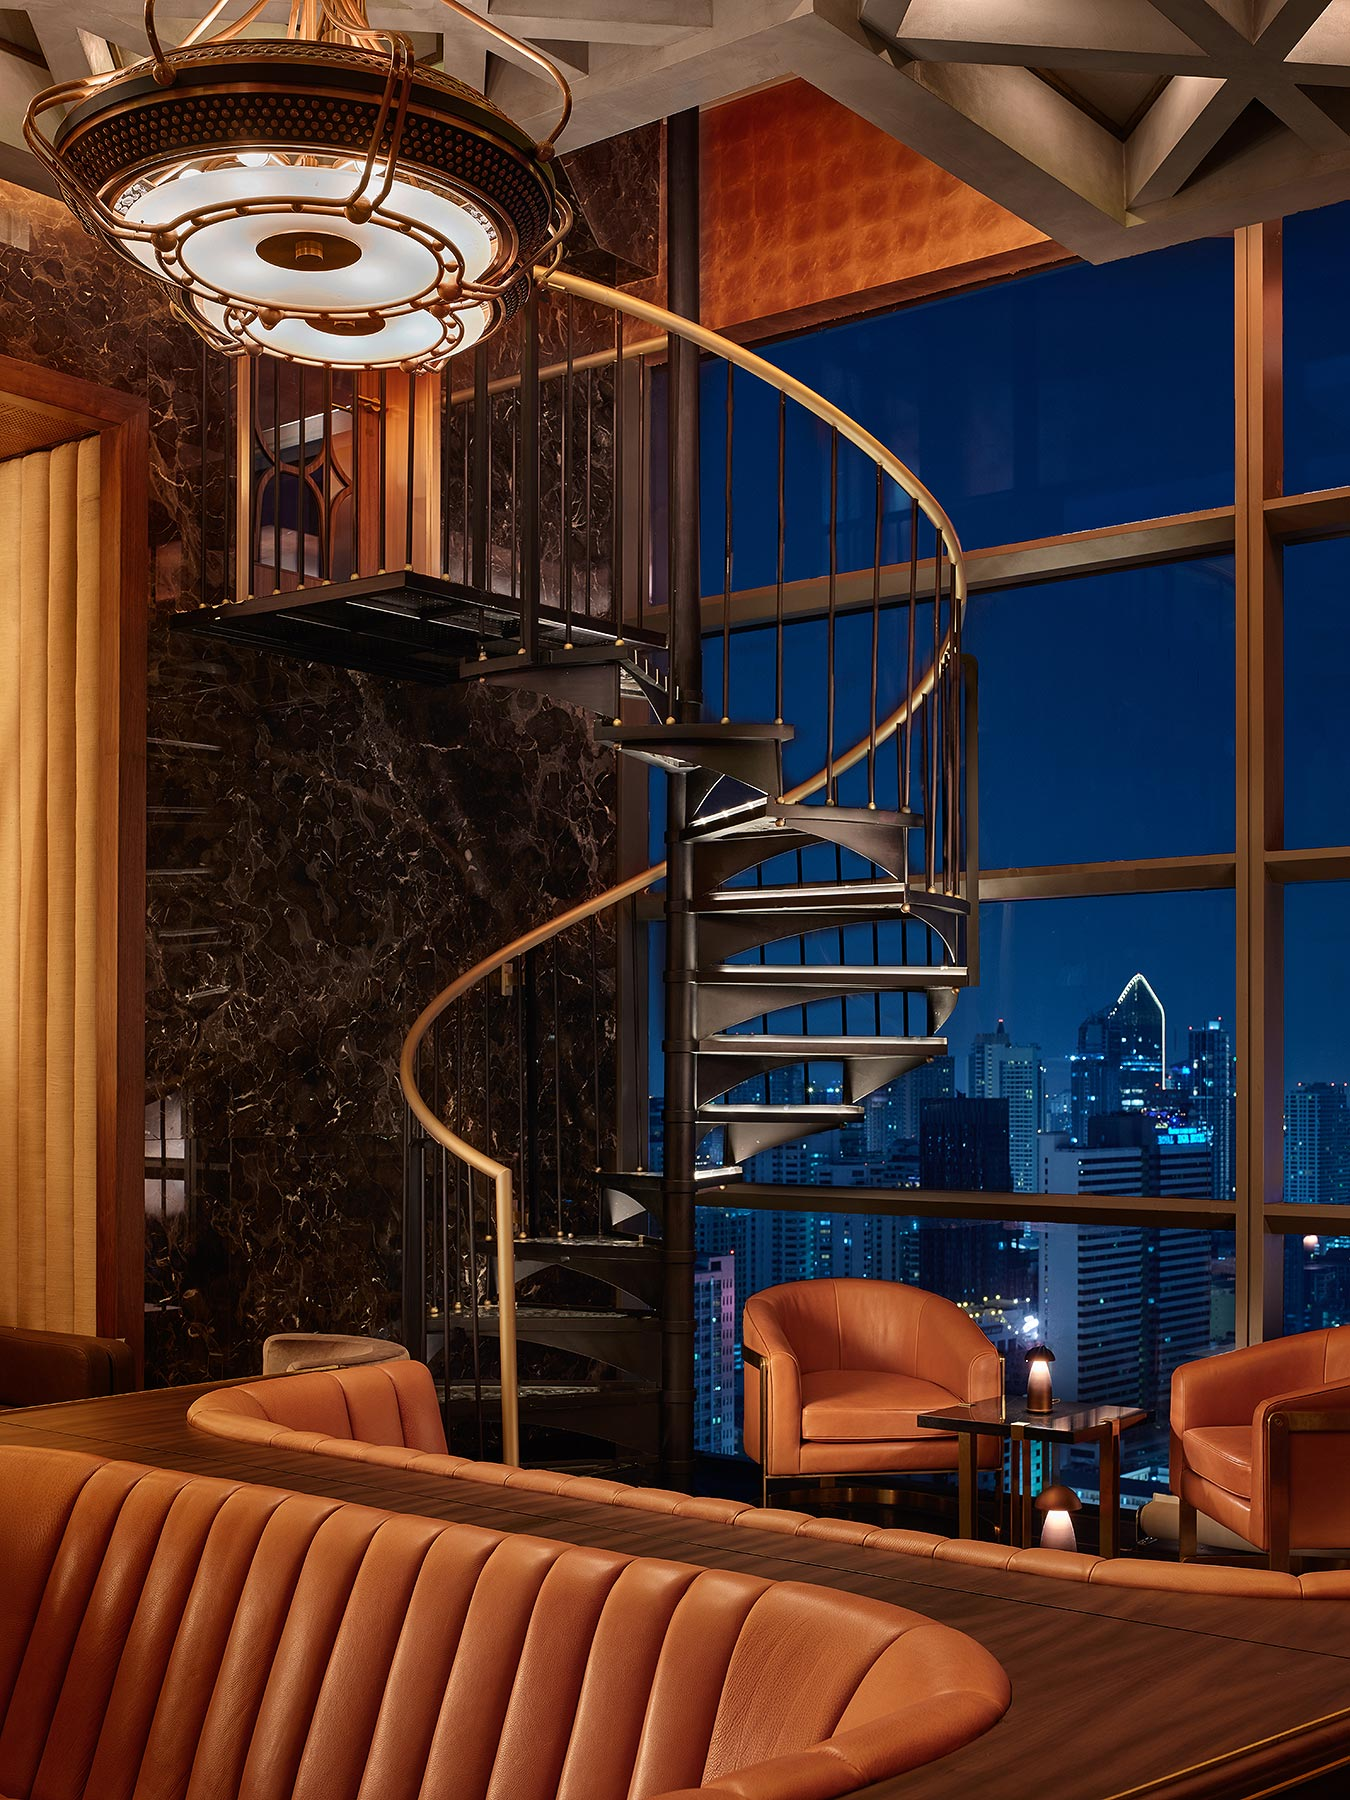 Owen Raggett, Architectural photographer Singapore. Rosewood Hotel, Bangkok, Thailand.